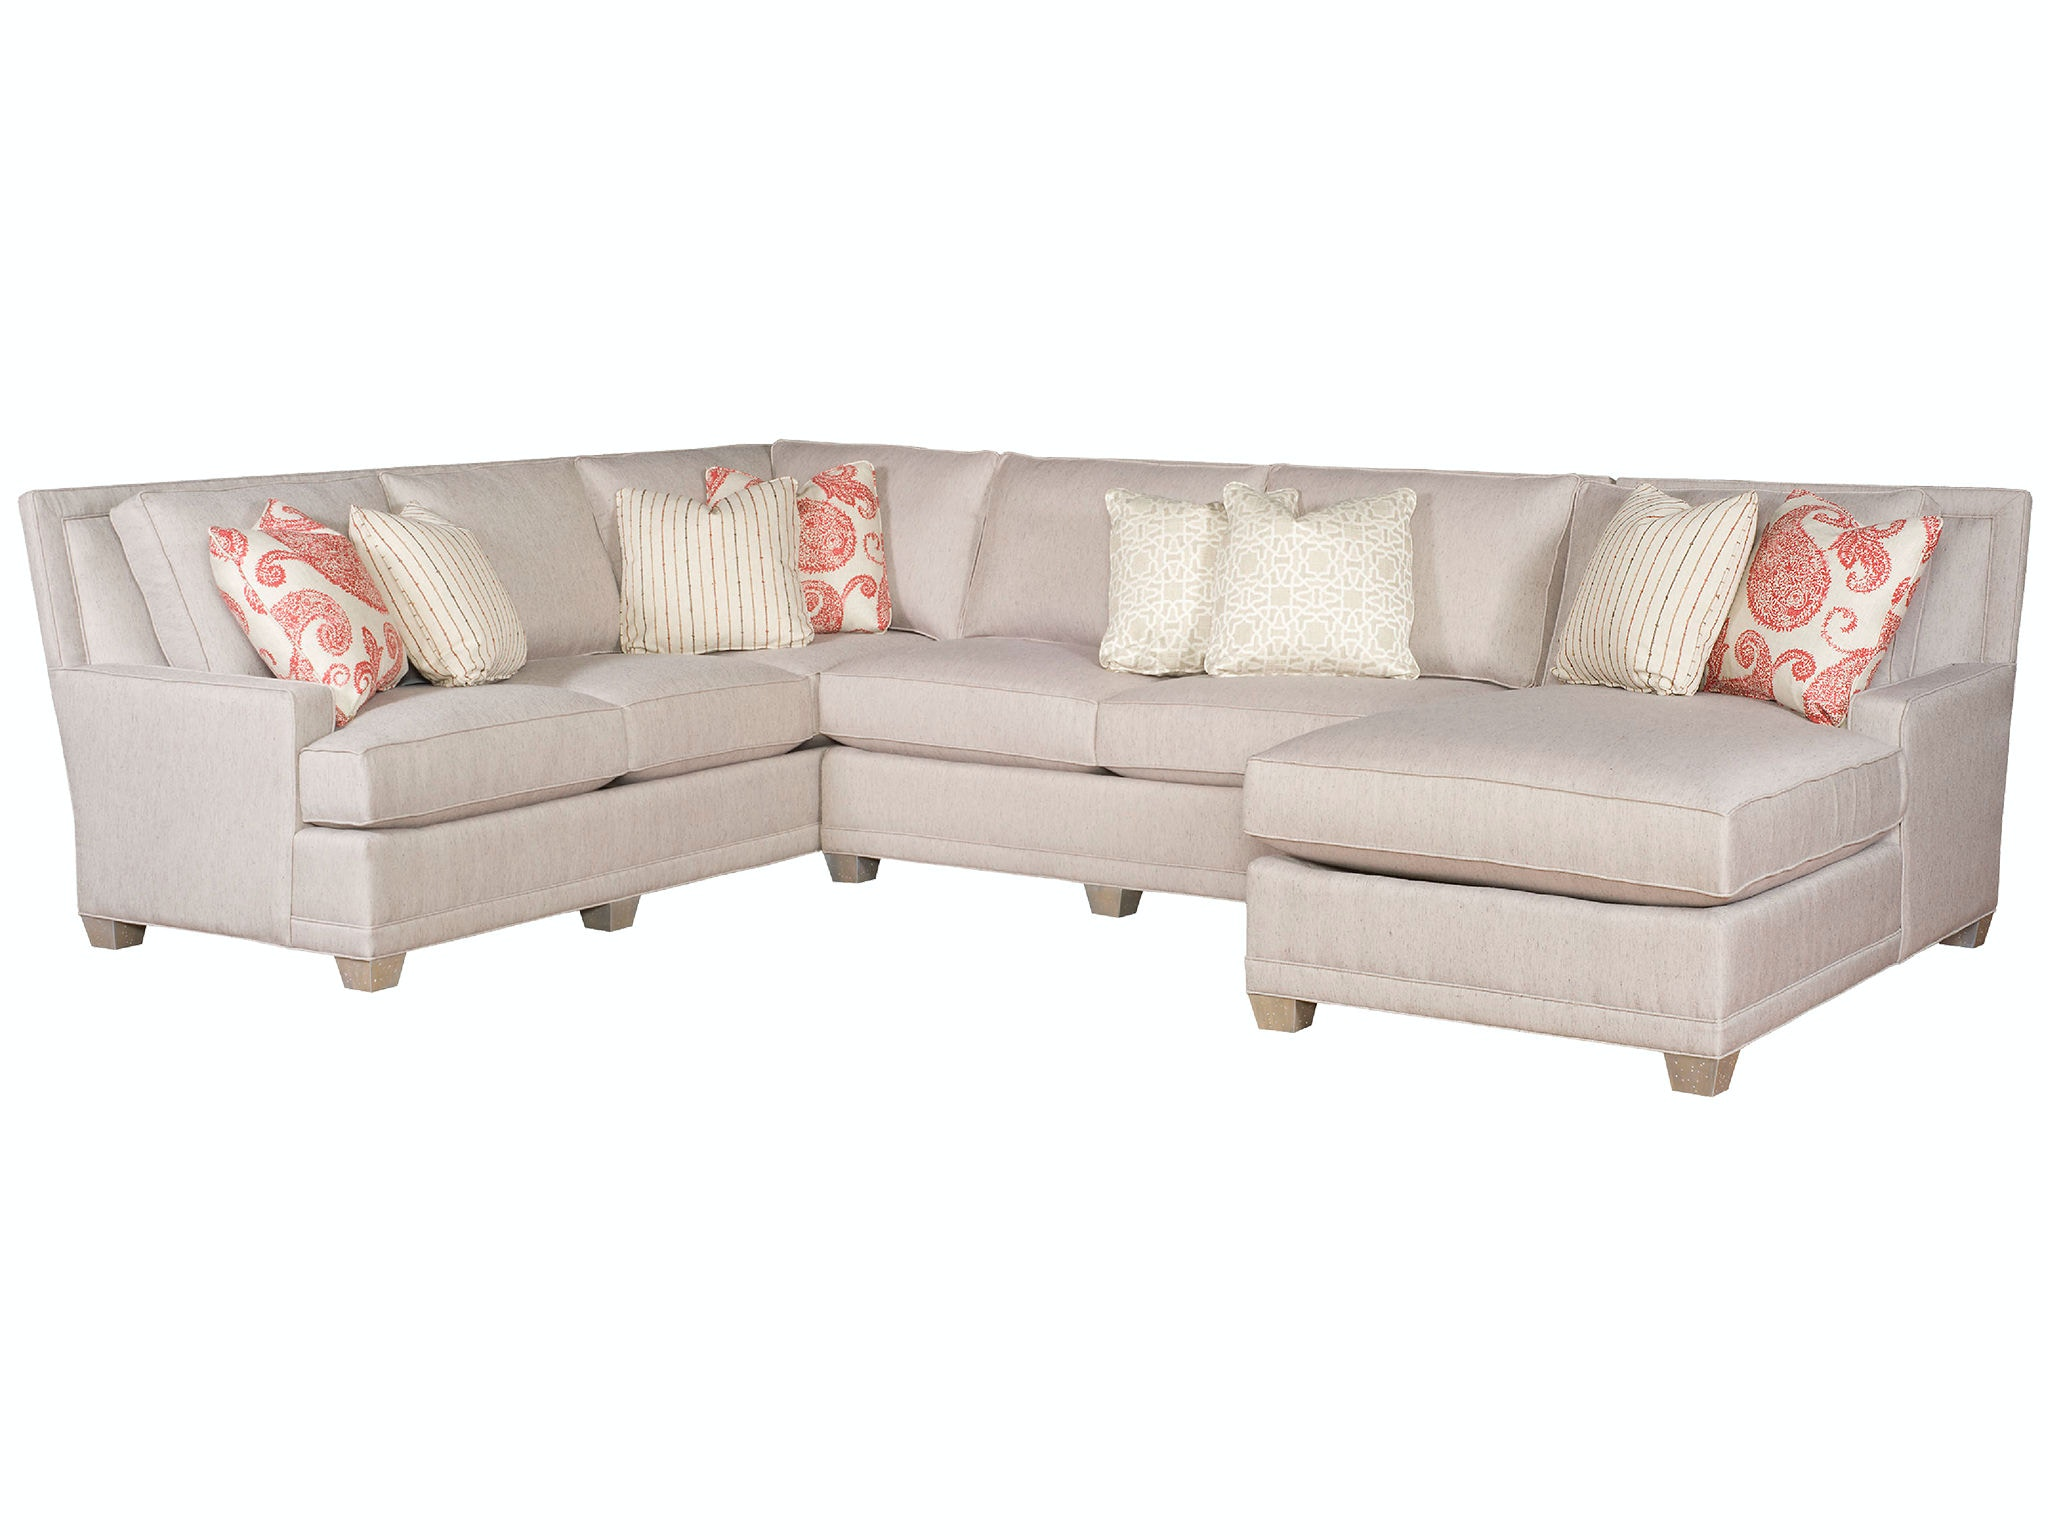 King Hickory Living Room Savannah Sectional